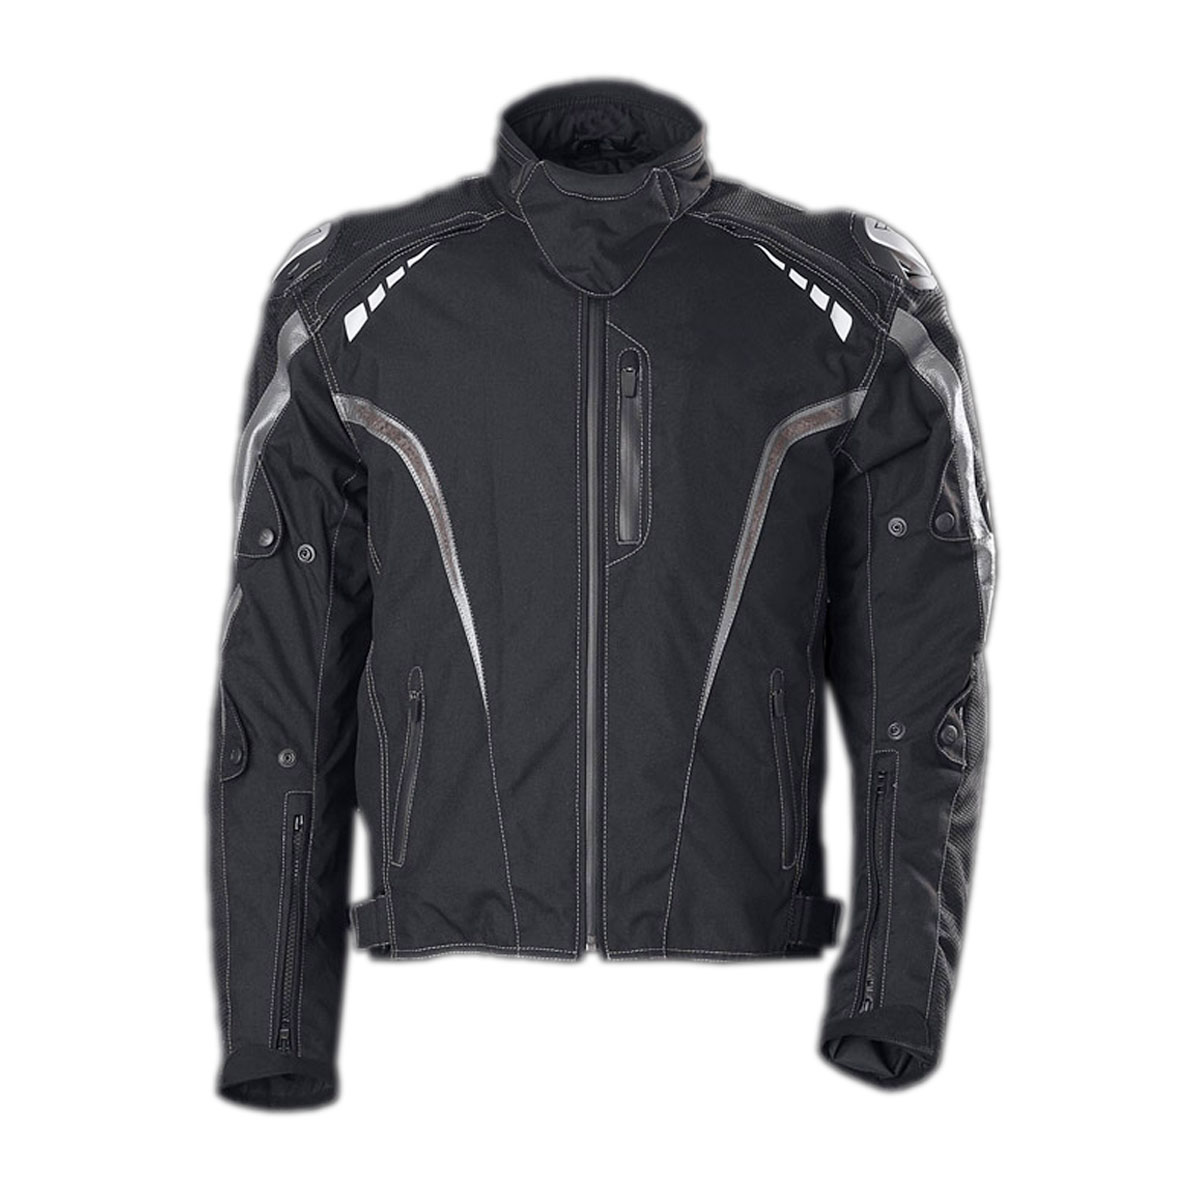 BLACK FEMALE CORDURA JACKET WITH SHOULDER SUPPORT